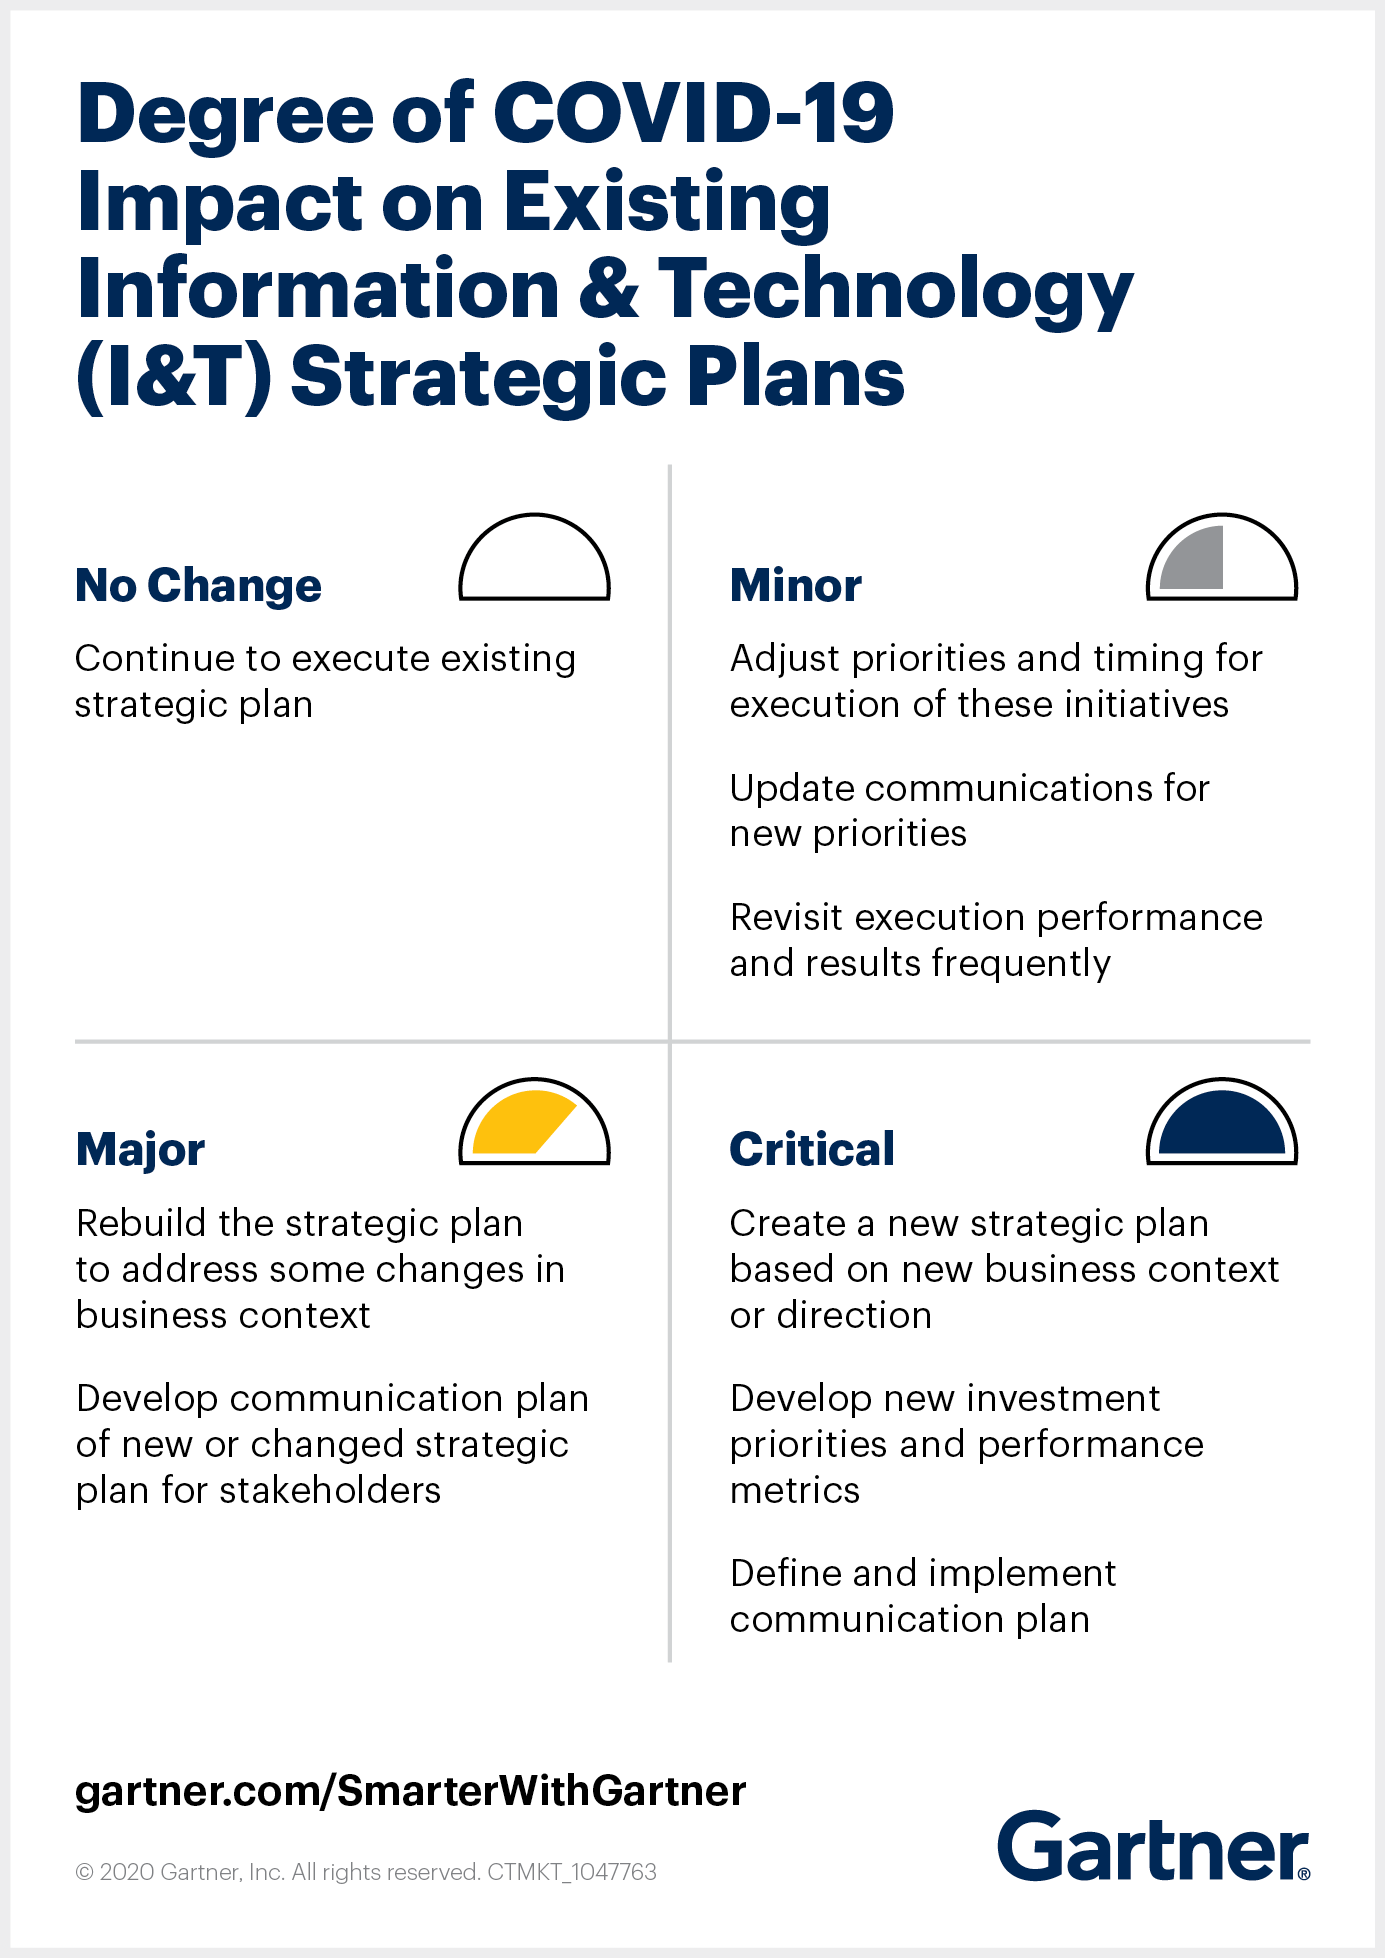 Gartner illustrates the degree of the COVID-19 impact on existing information and technology strategic planning.